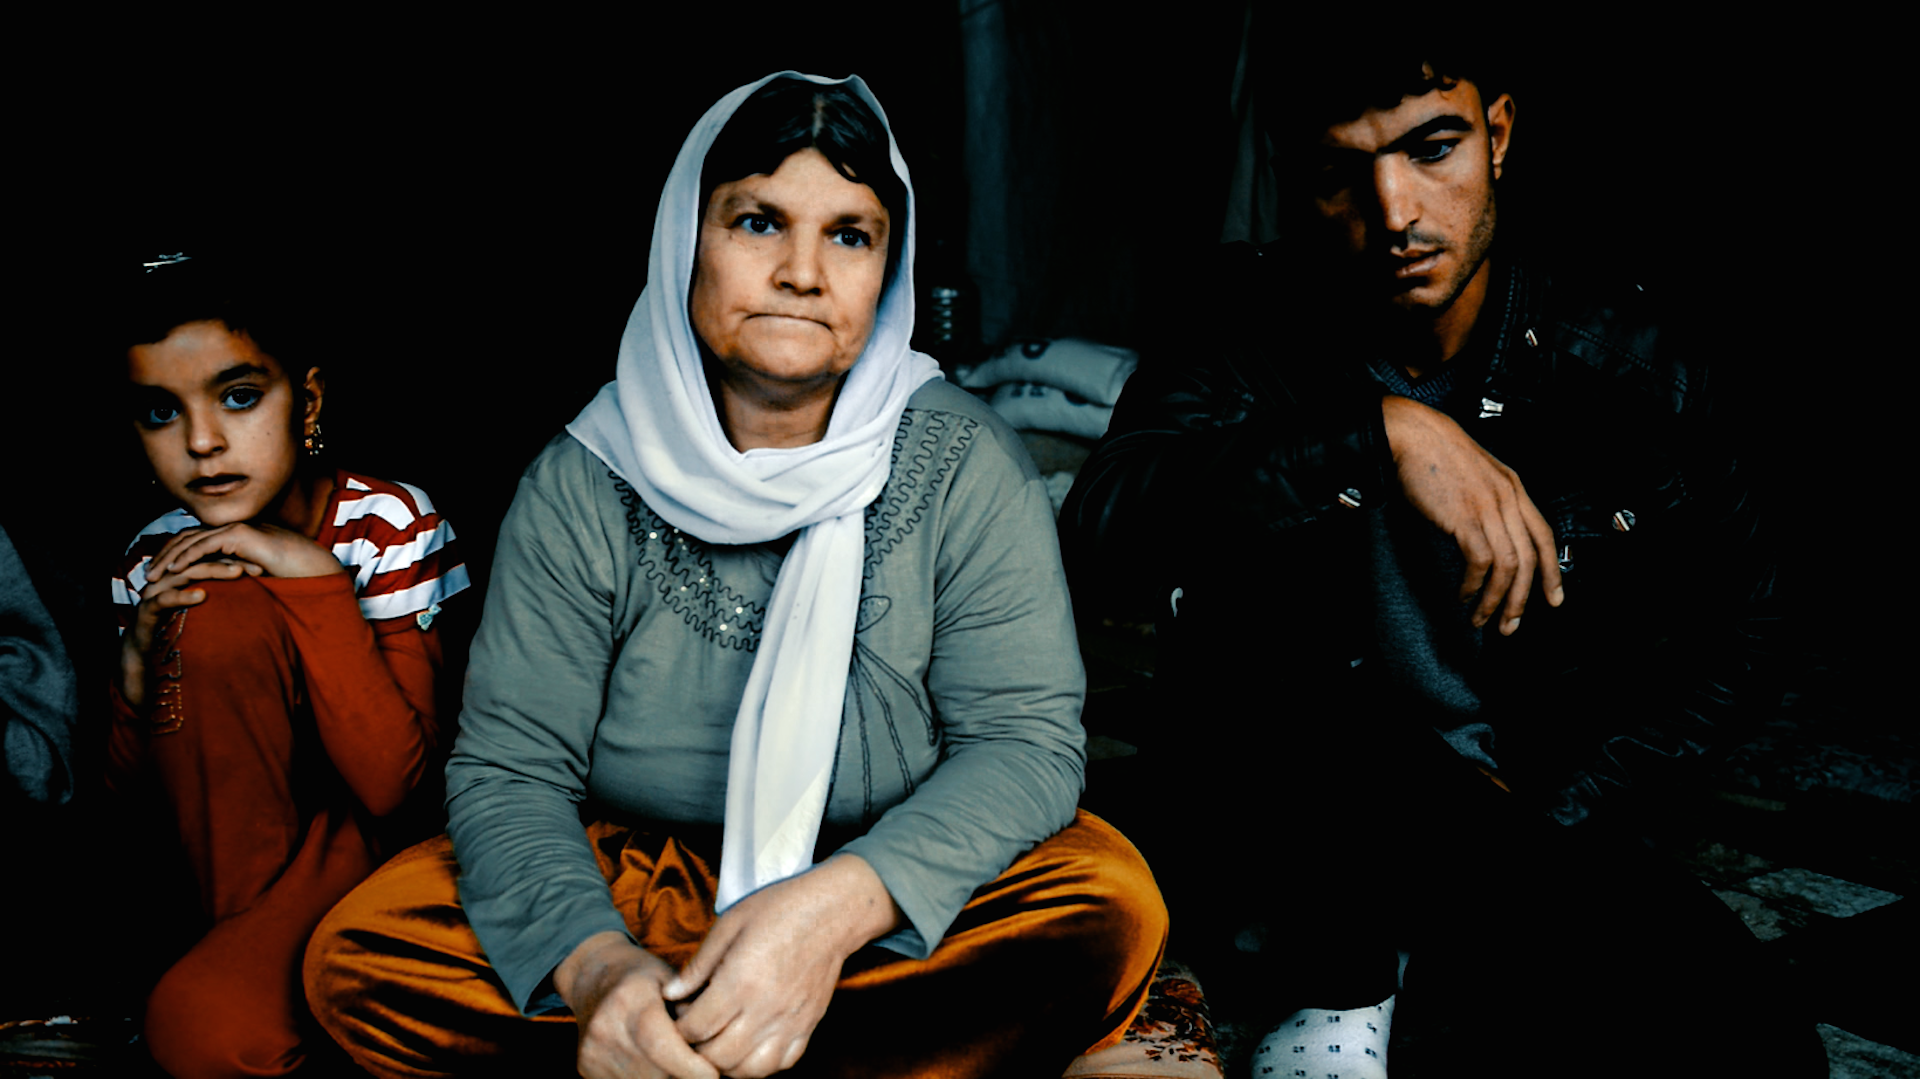 After ISIS overruns the Yazidi heartlands in northwestern Iraq they immediately demand that all Yazidis either convert to Islam or face death. The male members of the Chatto family, who are from the town of Tel Uzeir, refuse and their fate is sealed.